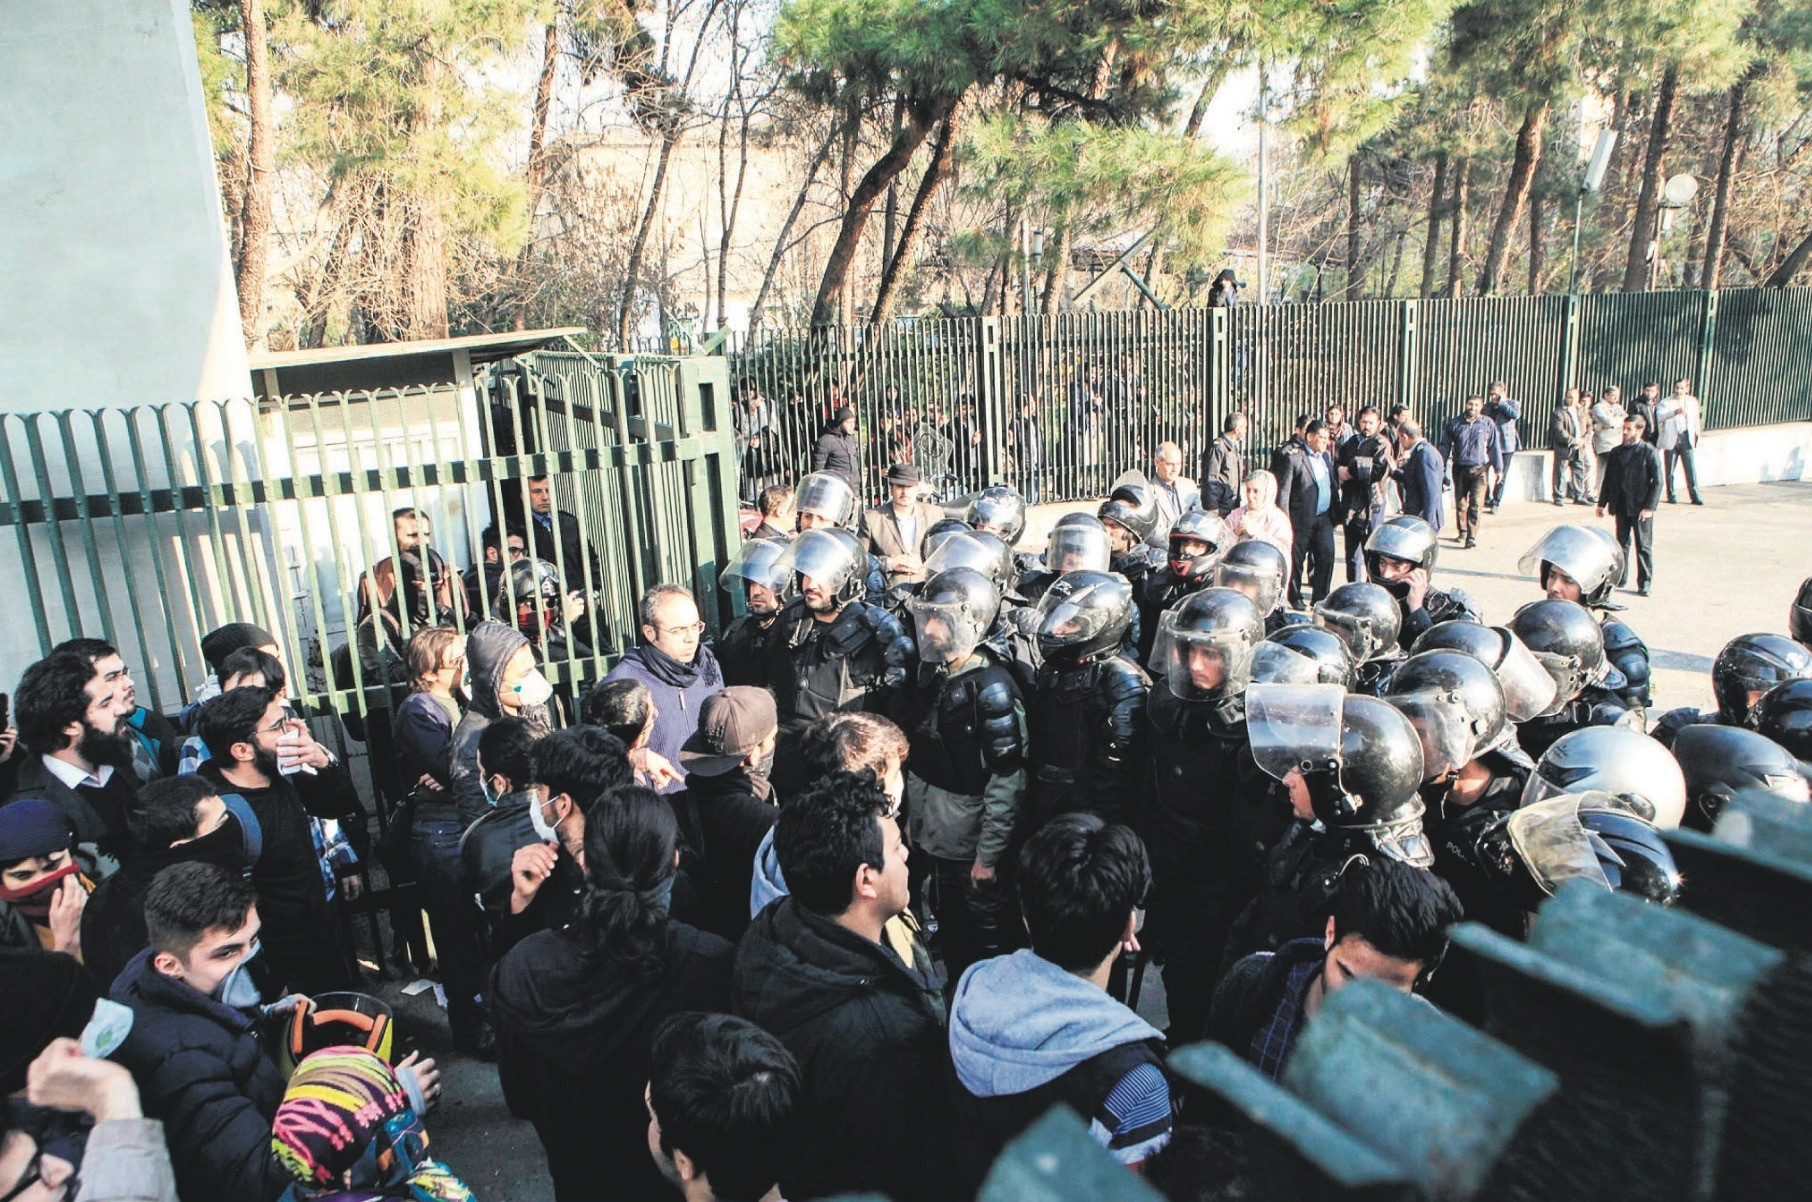 Iranian students scuffle with police at the University of Tehran during a demonstration, Tehran, Dec. 30, 2017.